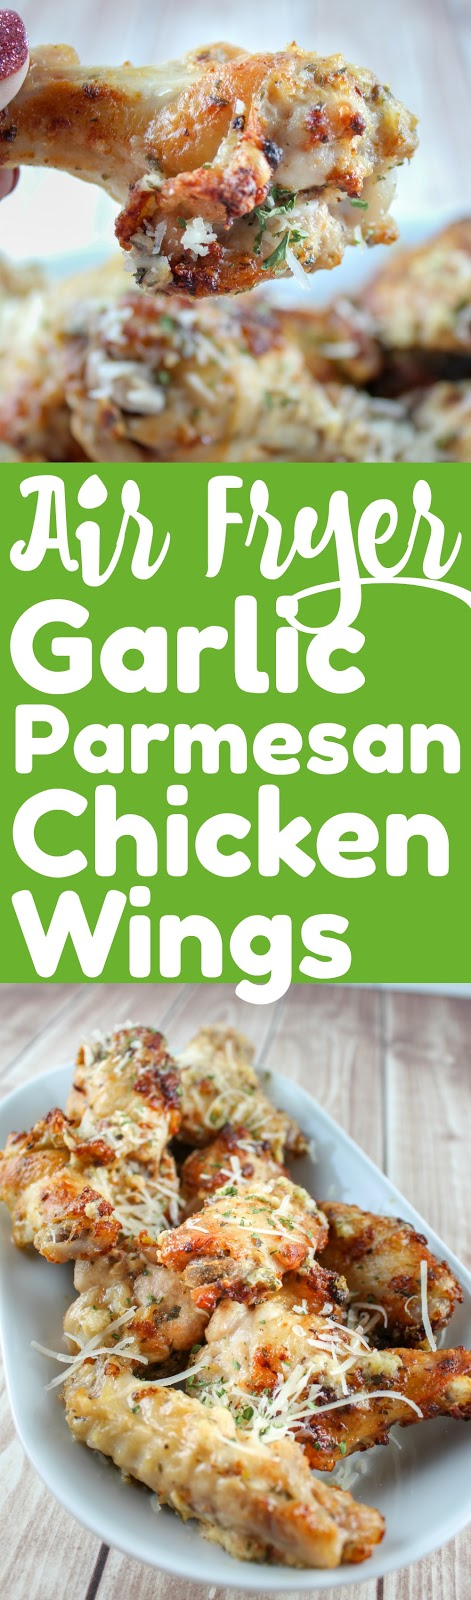 Garlic Parmesan Chicken Wings are my FAVORITE - I used to order them all the time from the pizza place up the street - but not any more! Now I make them at home in less time than the pizza delivery! These Air Fryer Garlic Parmesan Chicken Wings are the perfect dinner or party appetizer! #garlicparmesan #chickenwings #airfryer